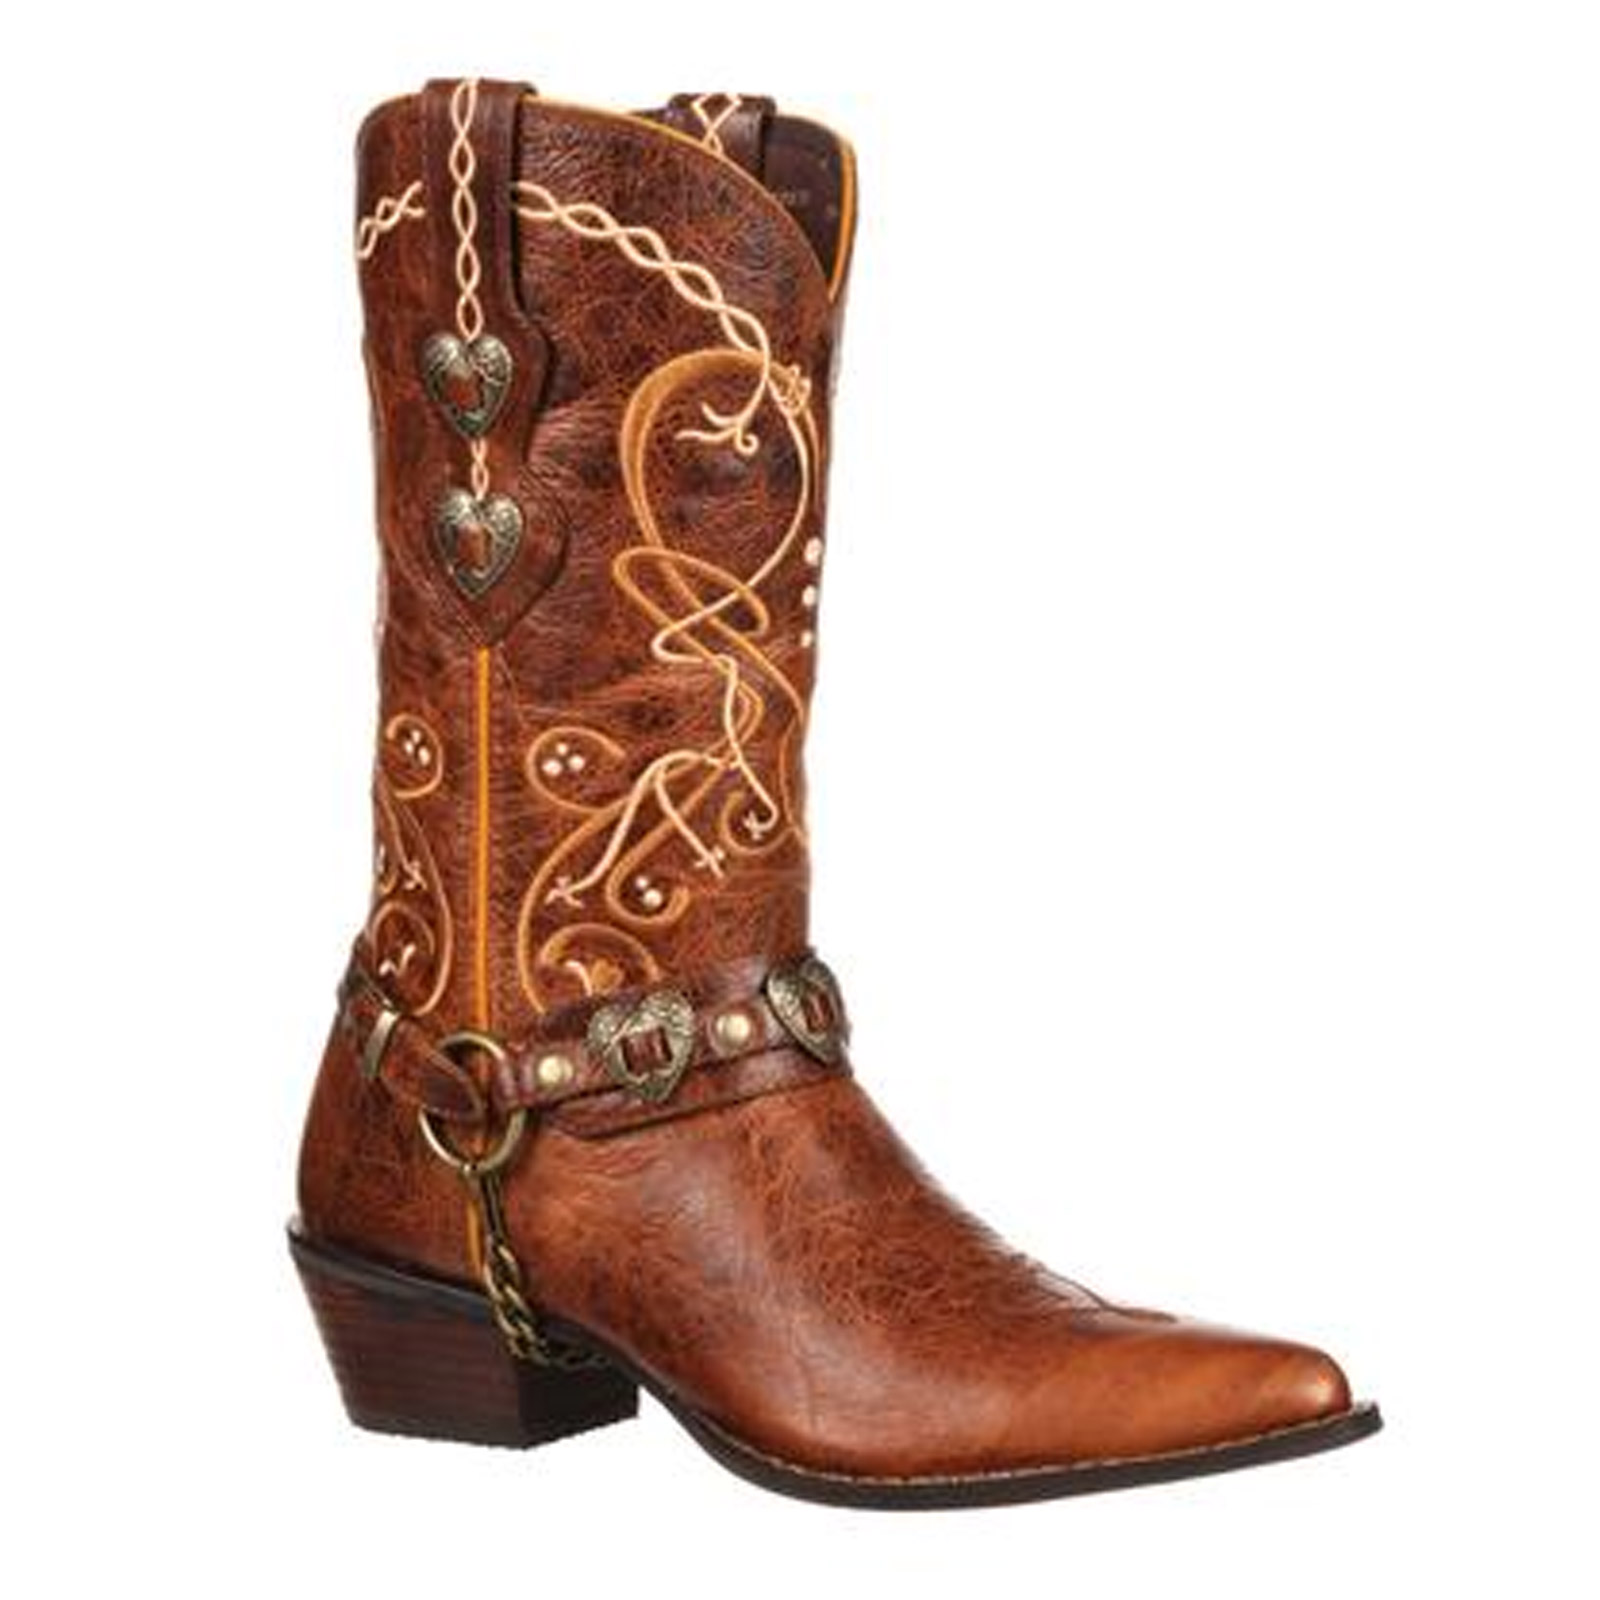 Fantastic Durango Women39s Crush Leather Heartfelt Cowboy Western Boots Light